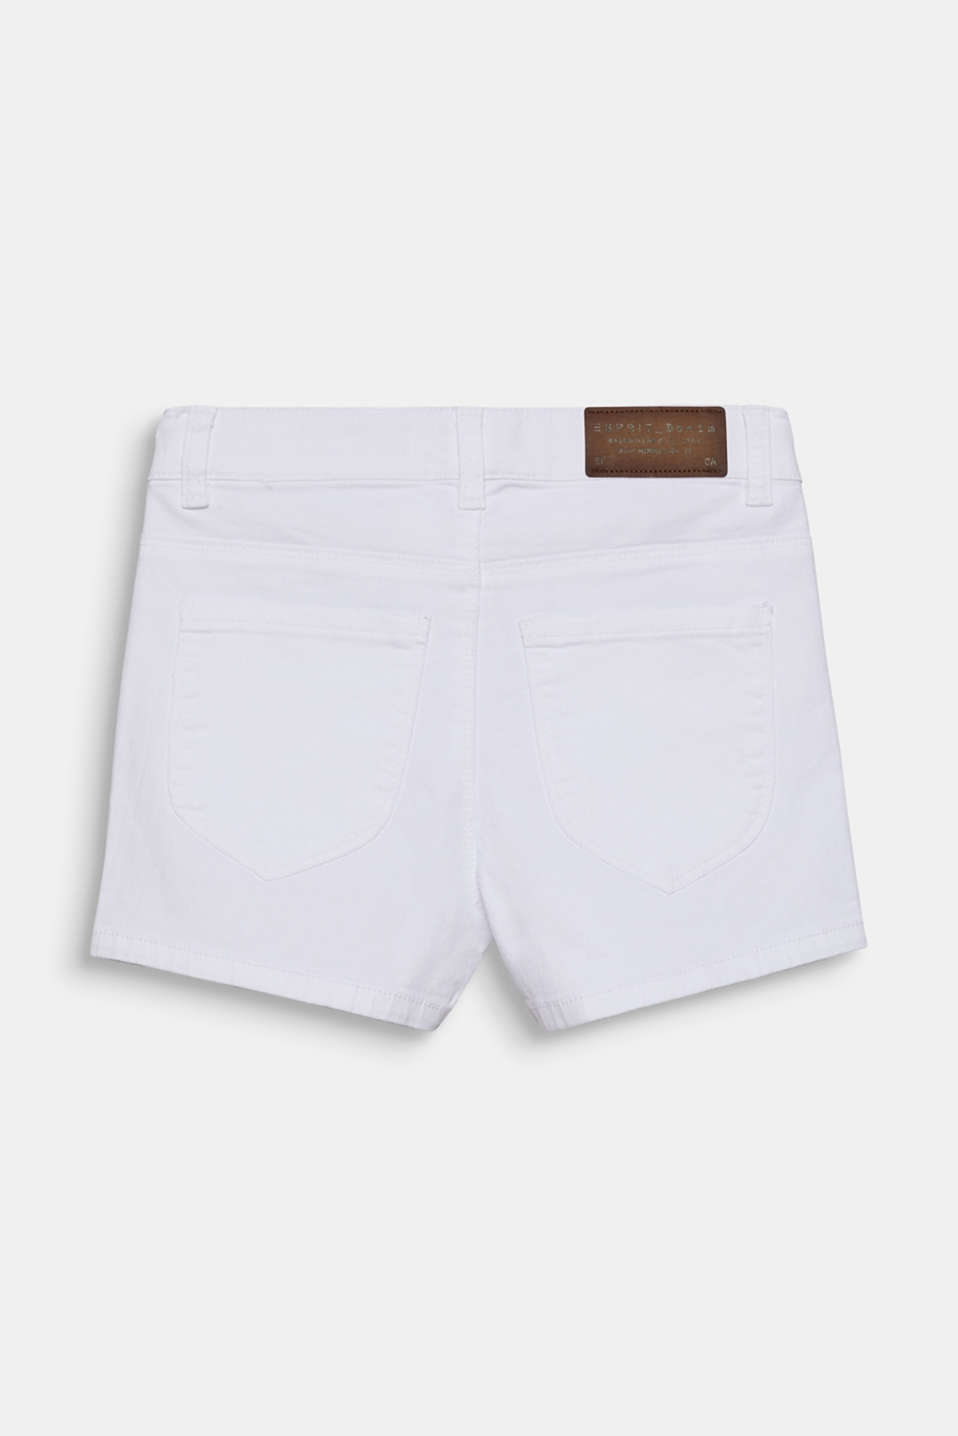 Skinny stretch denim shorts, adjustable waistband, LCWHITE, detail image number 1